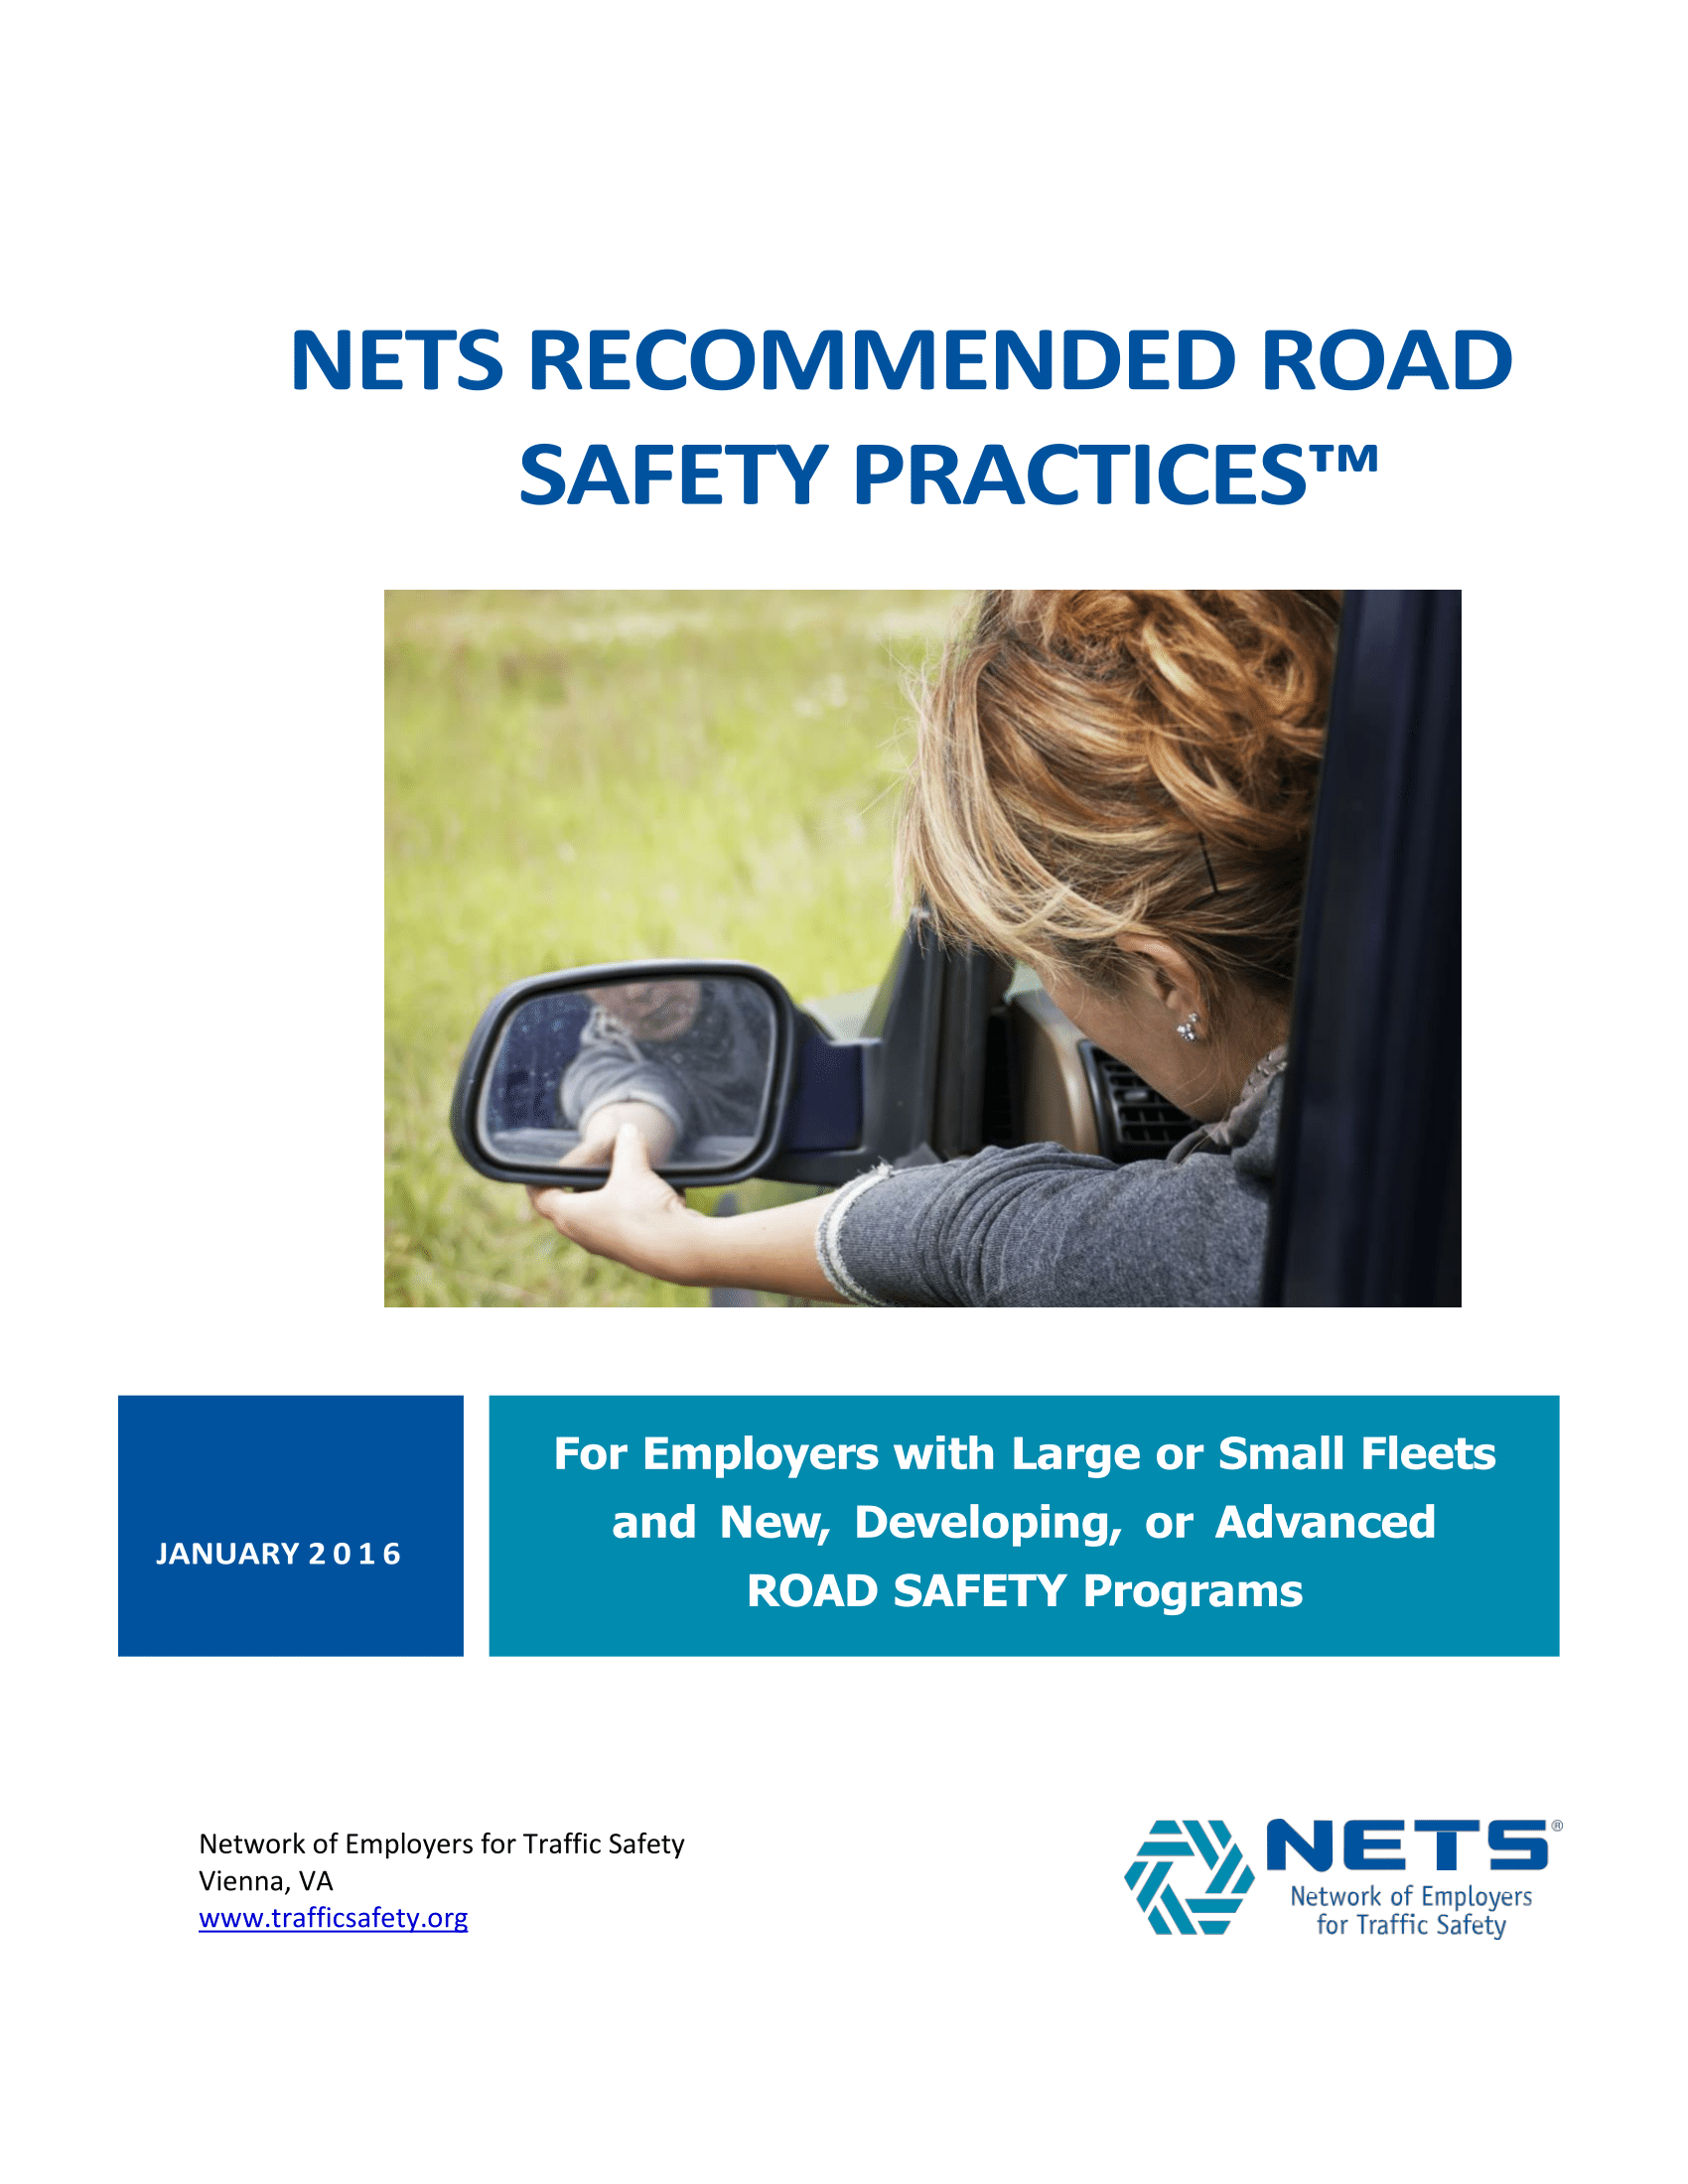 NETS-RECOMMENDED-ROAD-SAFETY-PRACTICES-Cover-1